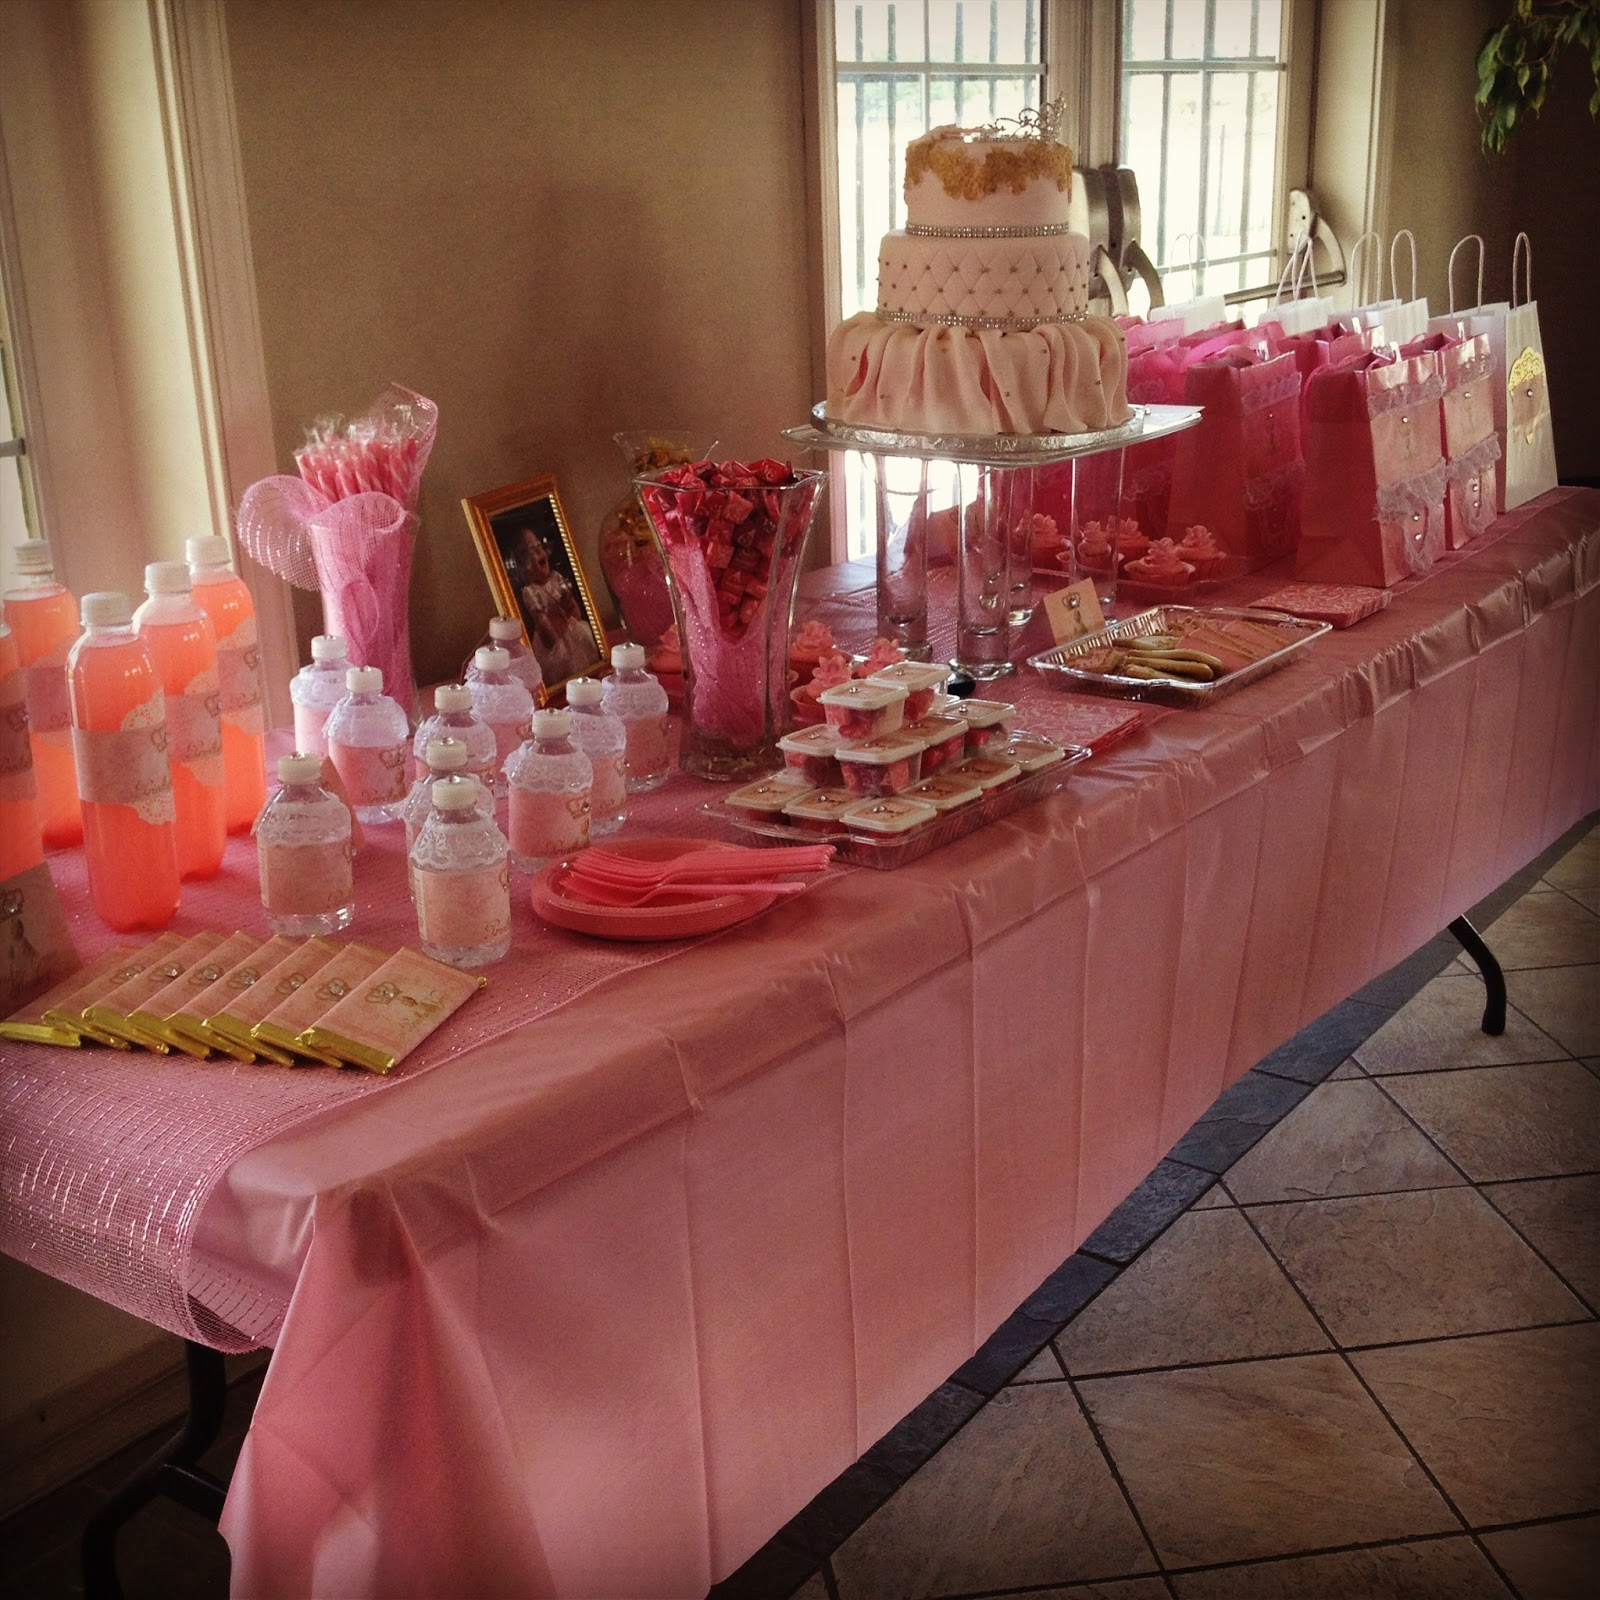 plastic chair covers party city high in a bag exquisite couture designs all things creative by crystal